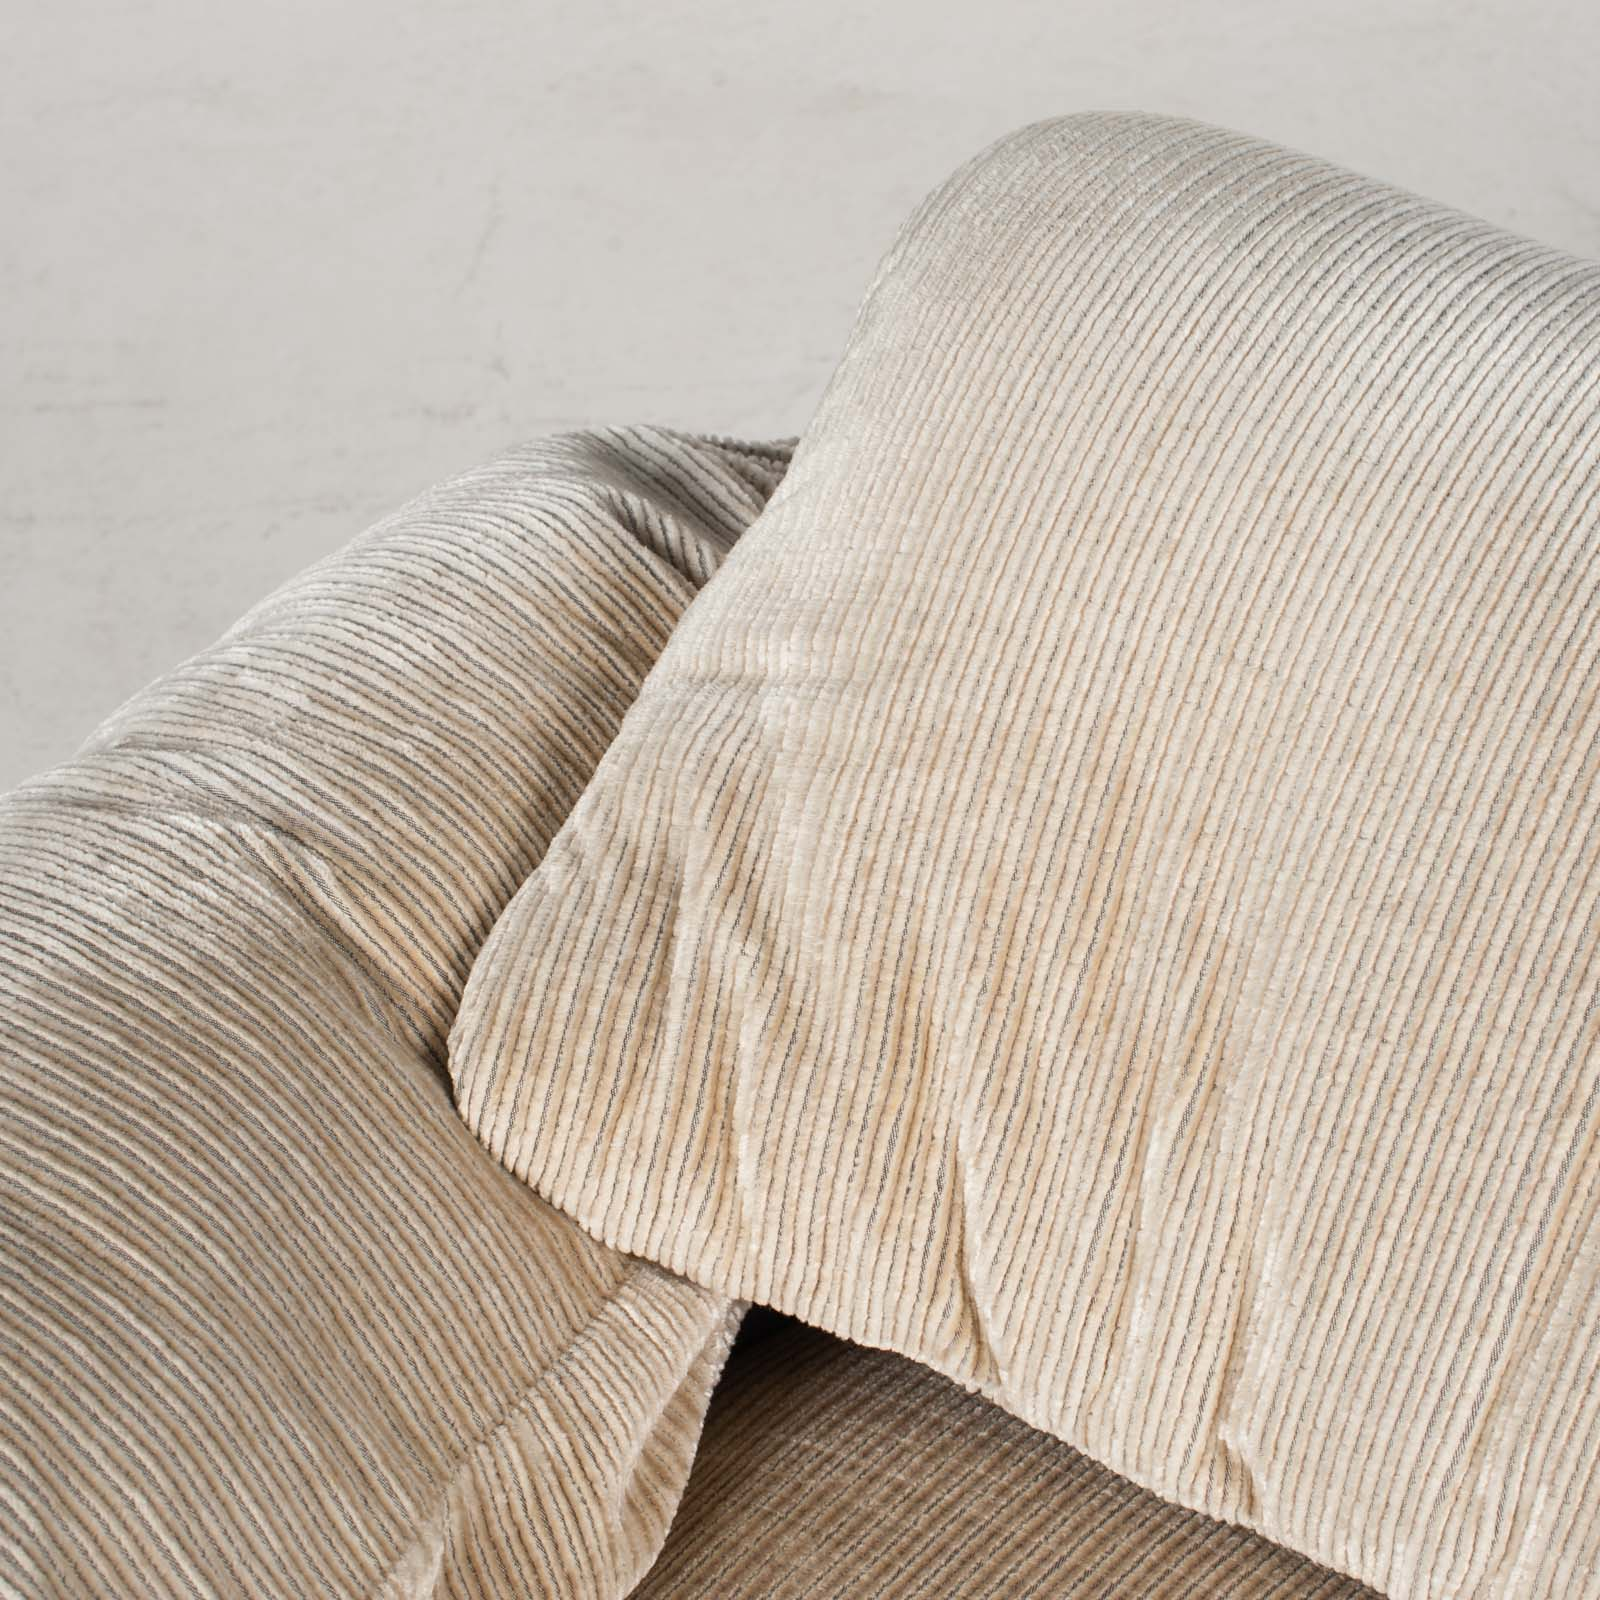 Maralunga Armchair By Vico Magistretti For Cassina In Original Upholstery 1970s Italy 05